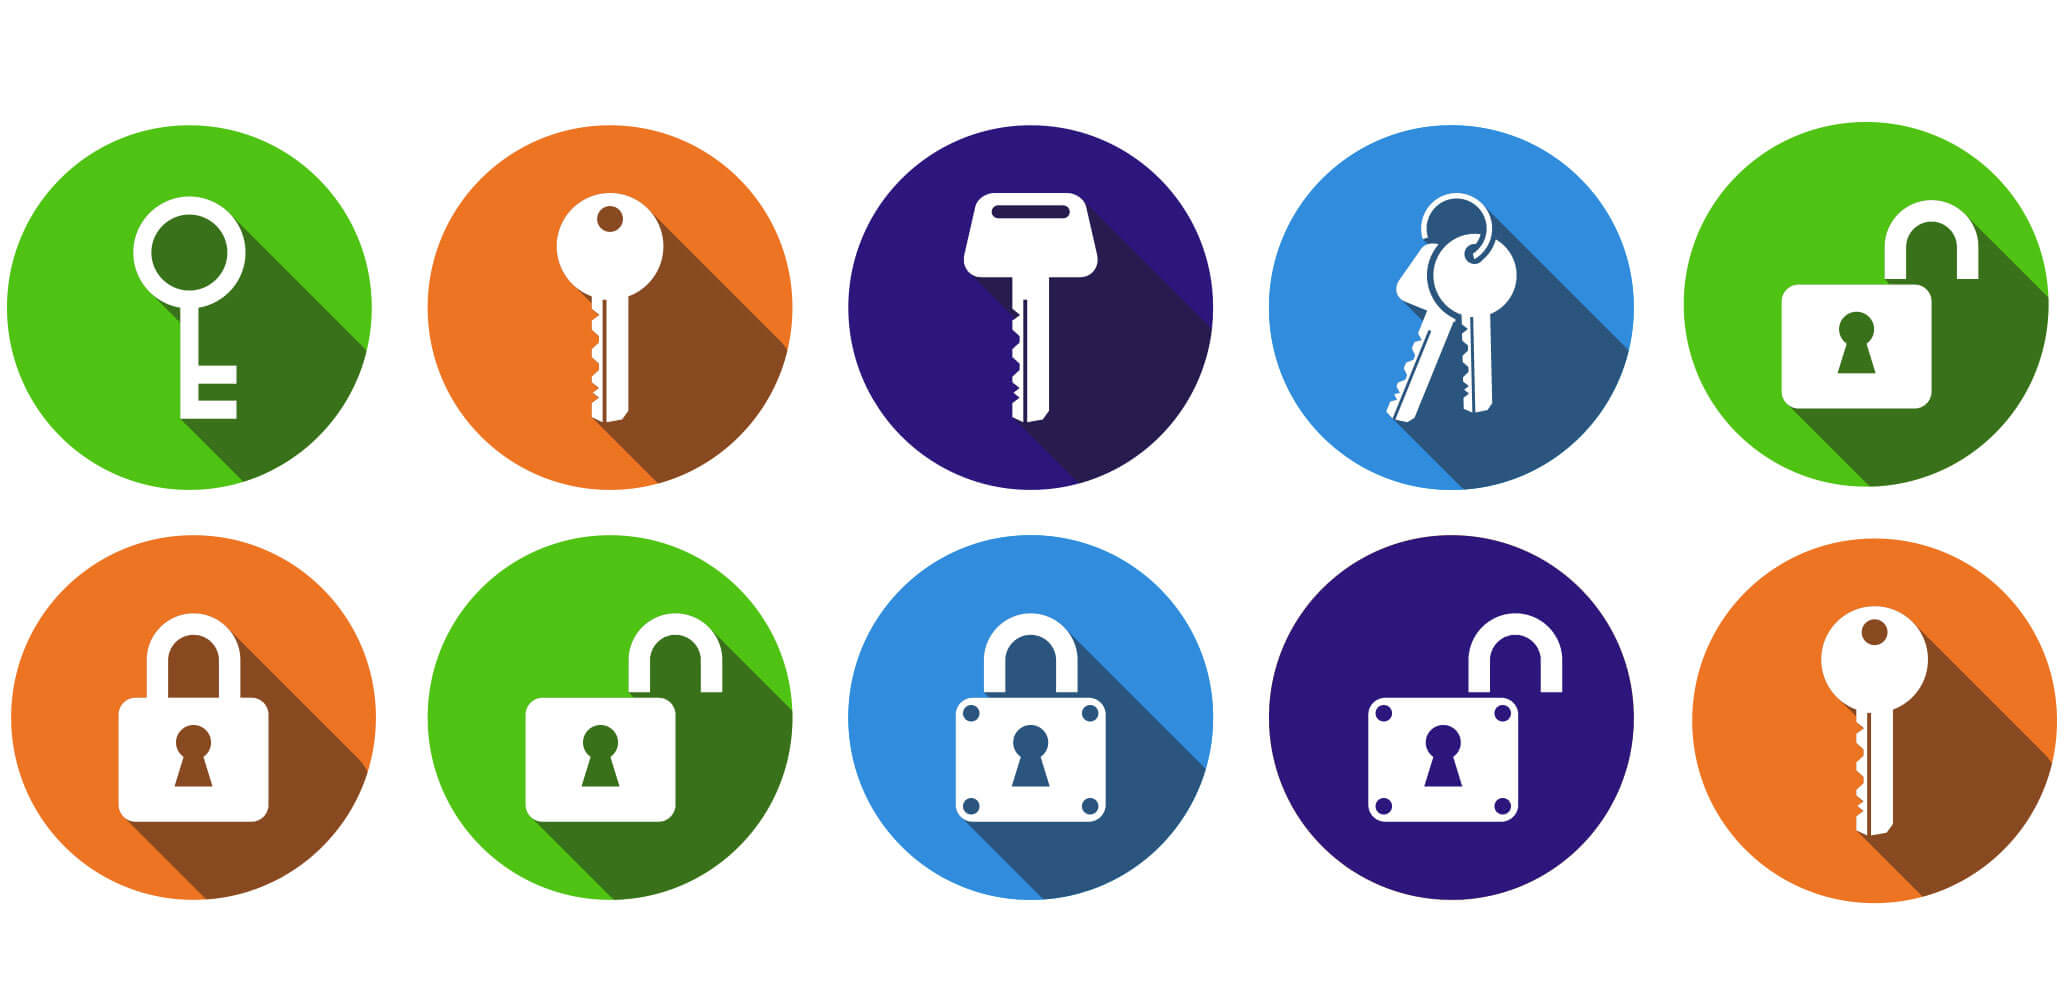 Icons of padlocks and keys that represent how secured personal loans unlock access to more money